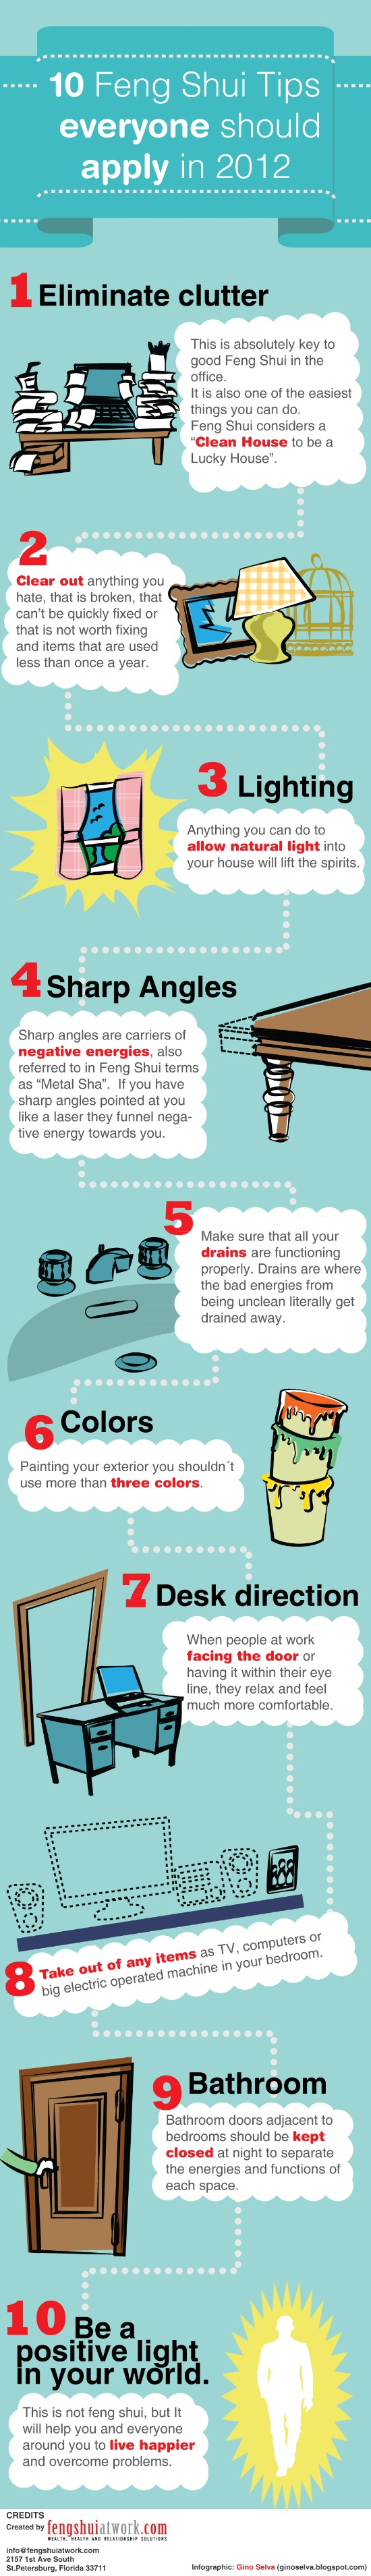 10 Feng Shui Rules Infographic